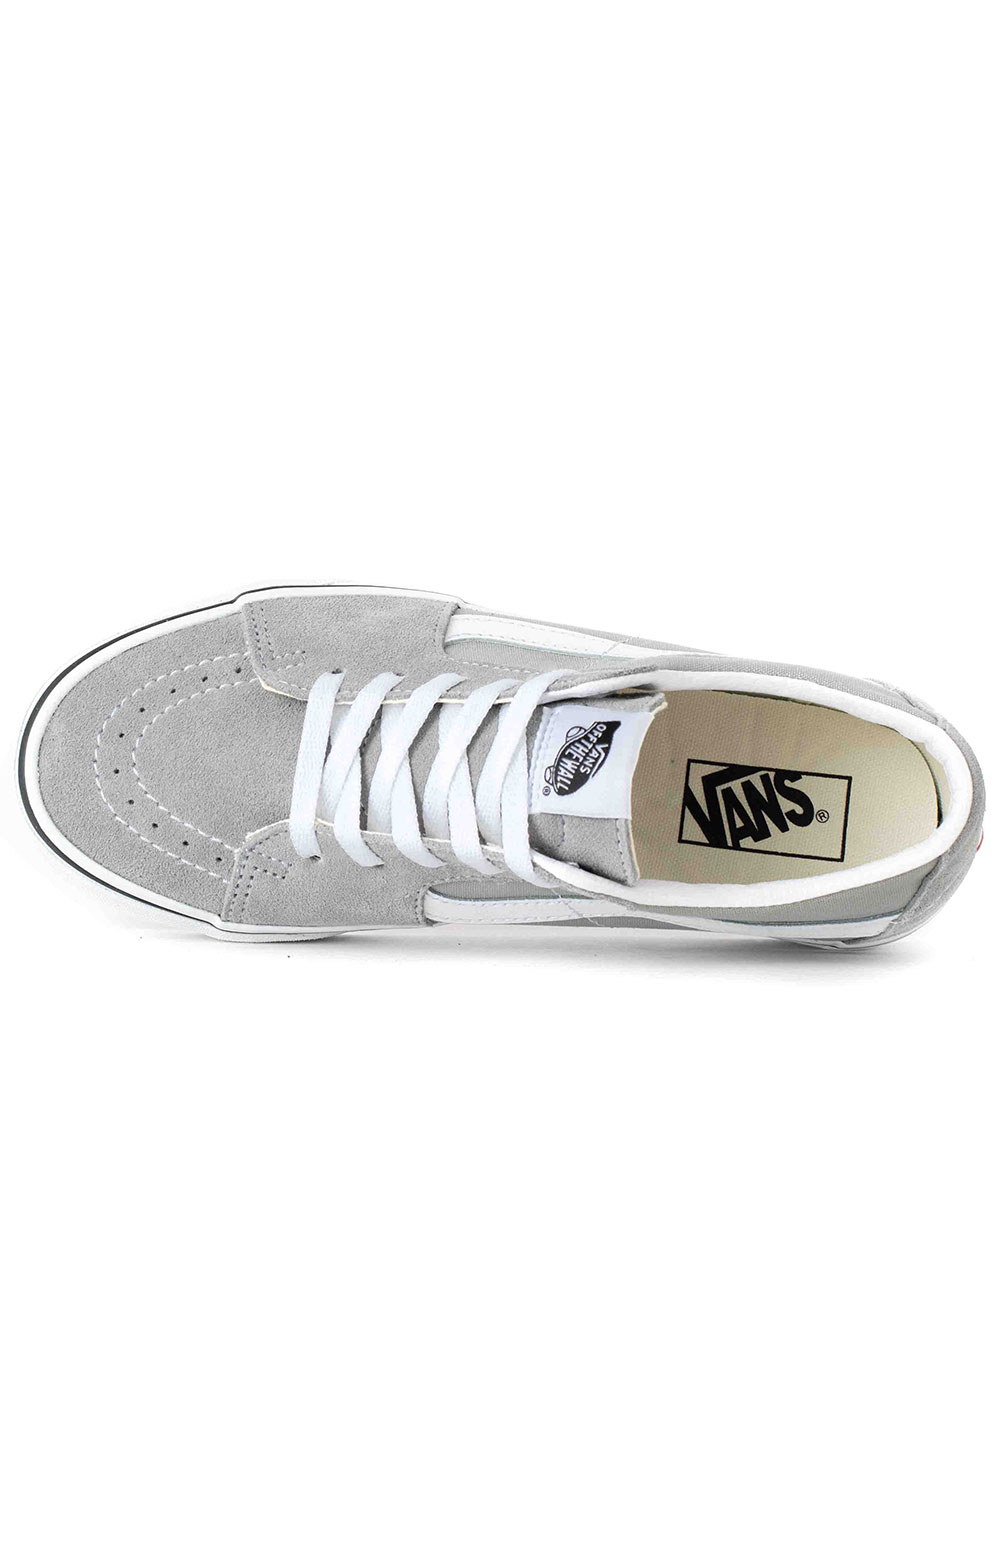 (UUKIYP) Sk8-Low Shoes - Drizzle/True White  2